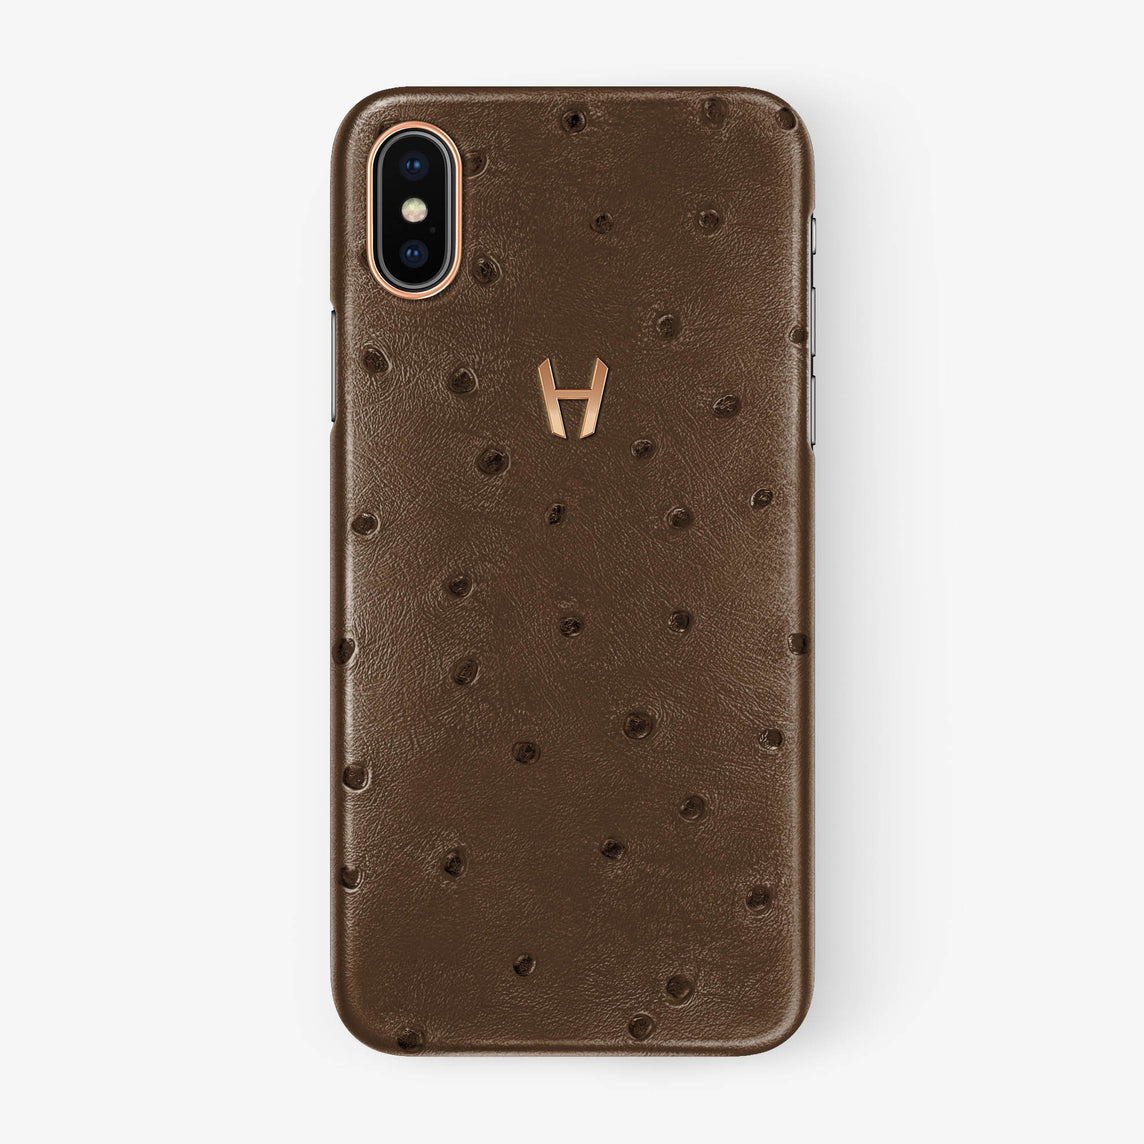 Ostrich Case iPhone X/Xs | Tobacco - Rose Gold withouth-personalization